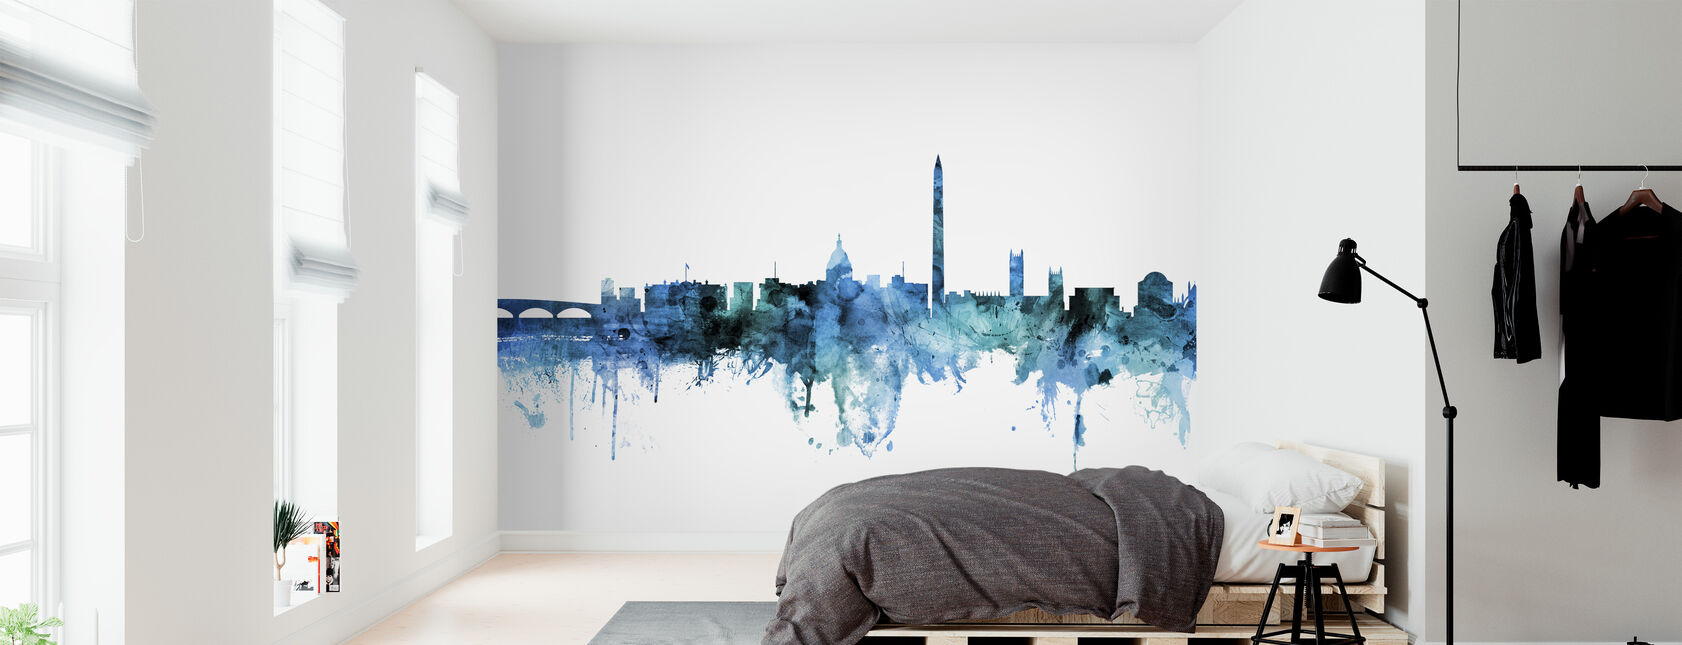 Washington DC Skyline - Wallpaper - Bedroom